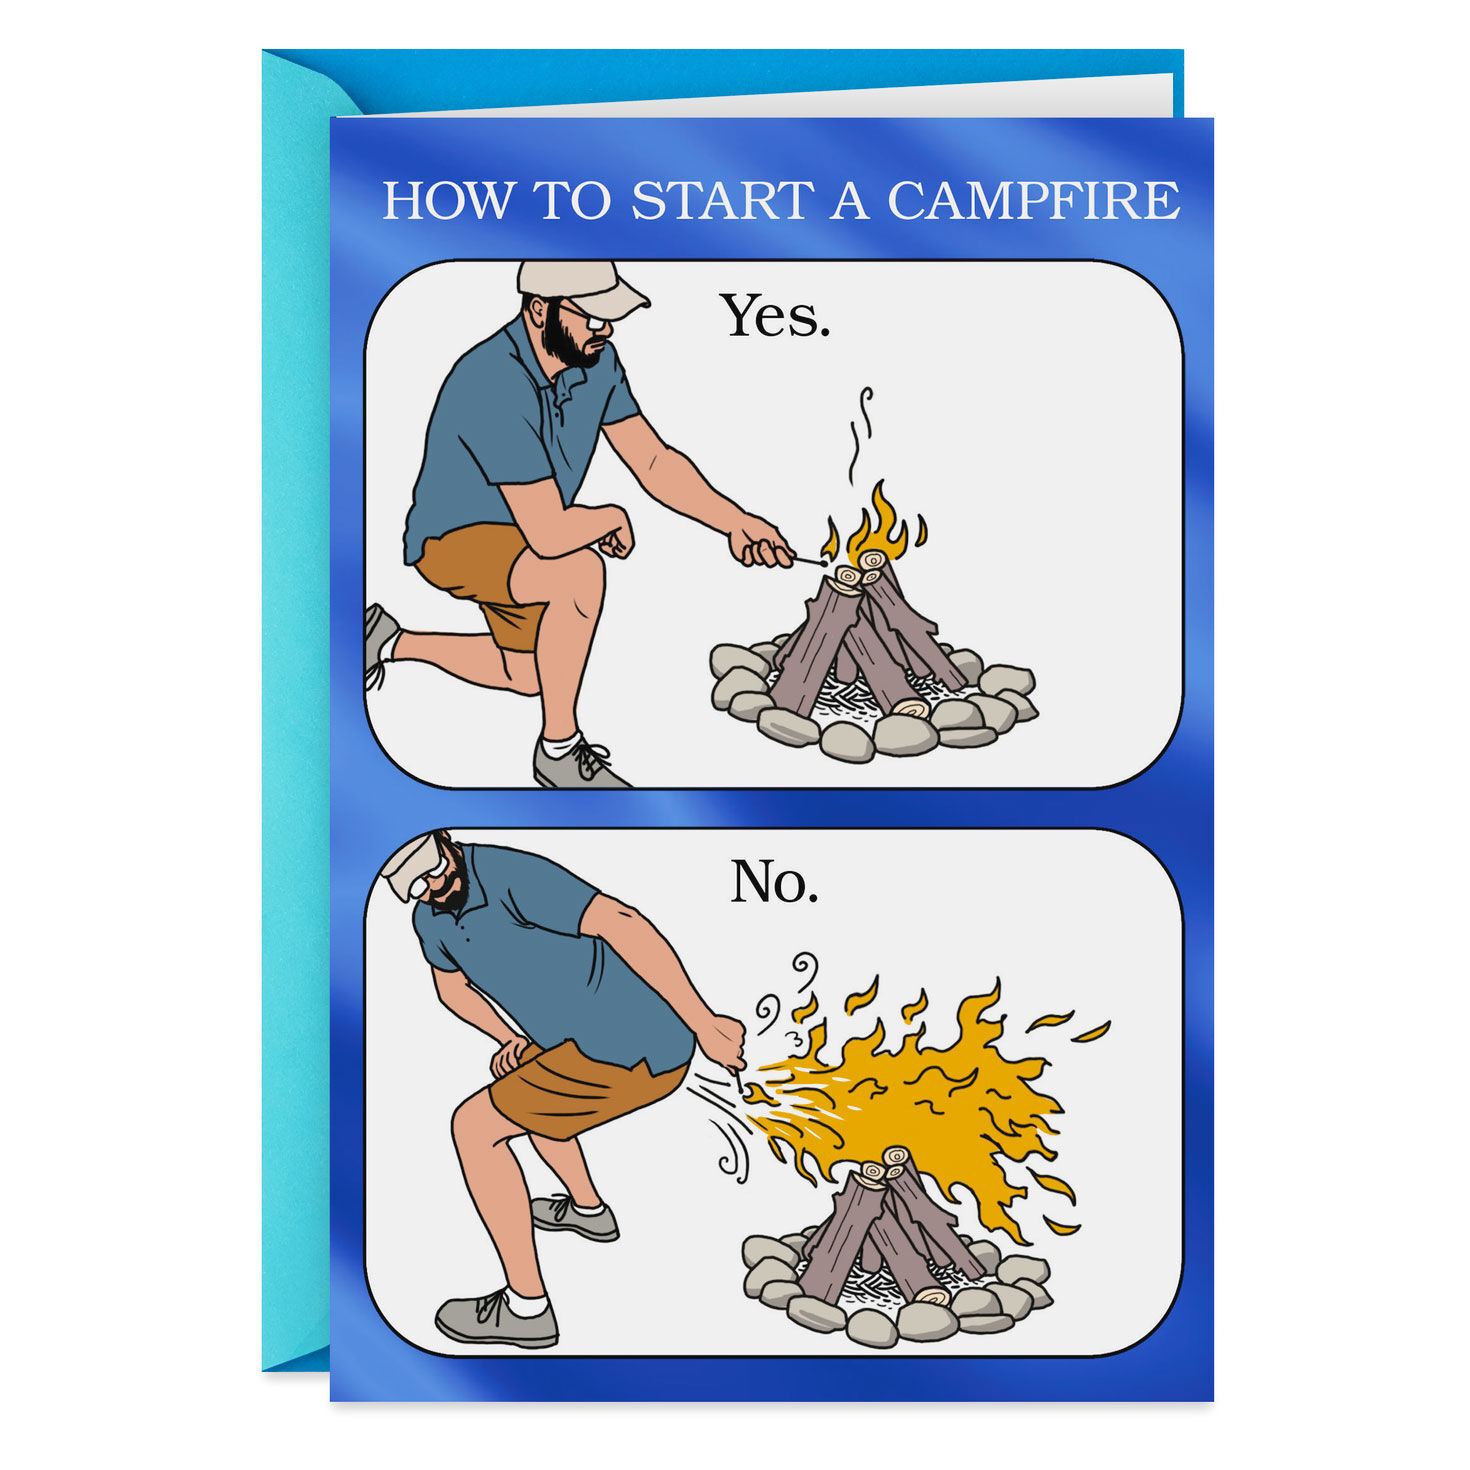 photo regarding Free Printable Funny Father's Day Cards named Just take Fired Up Humorous Fathers Working day Card